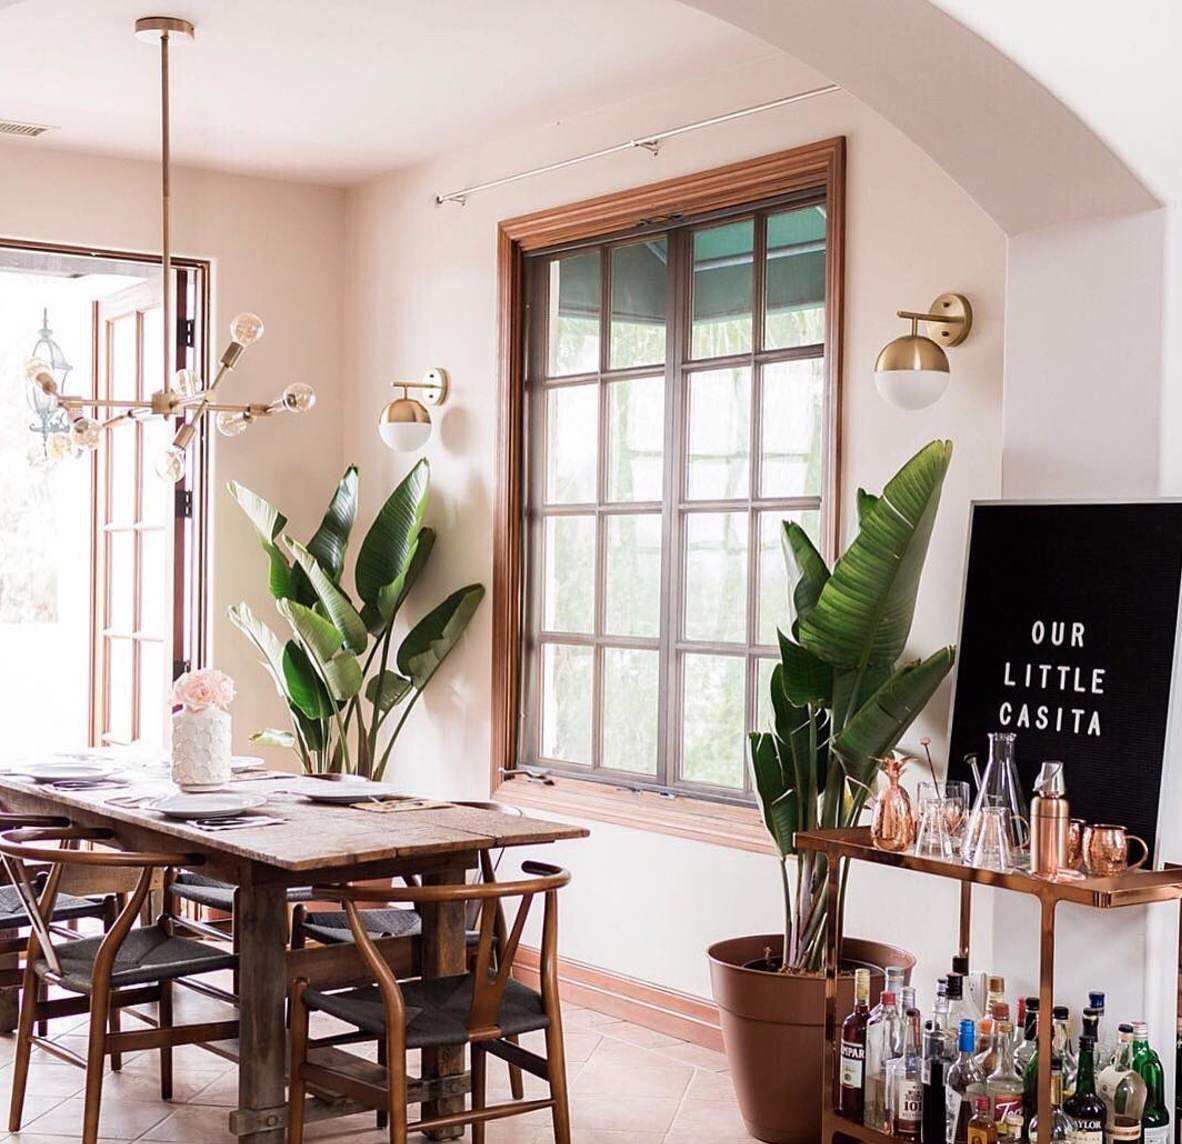 dining room with a bar cart and sign that says our little casita